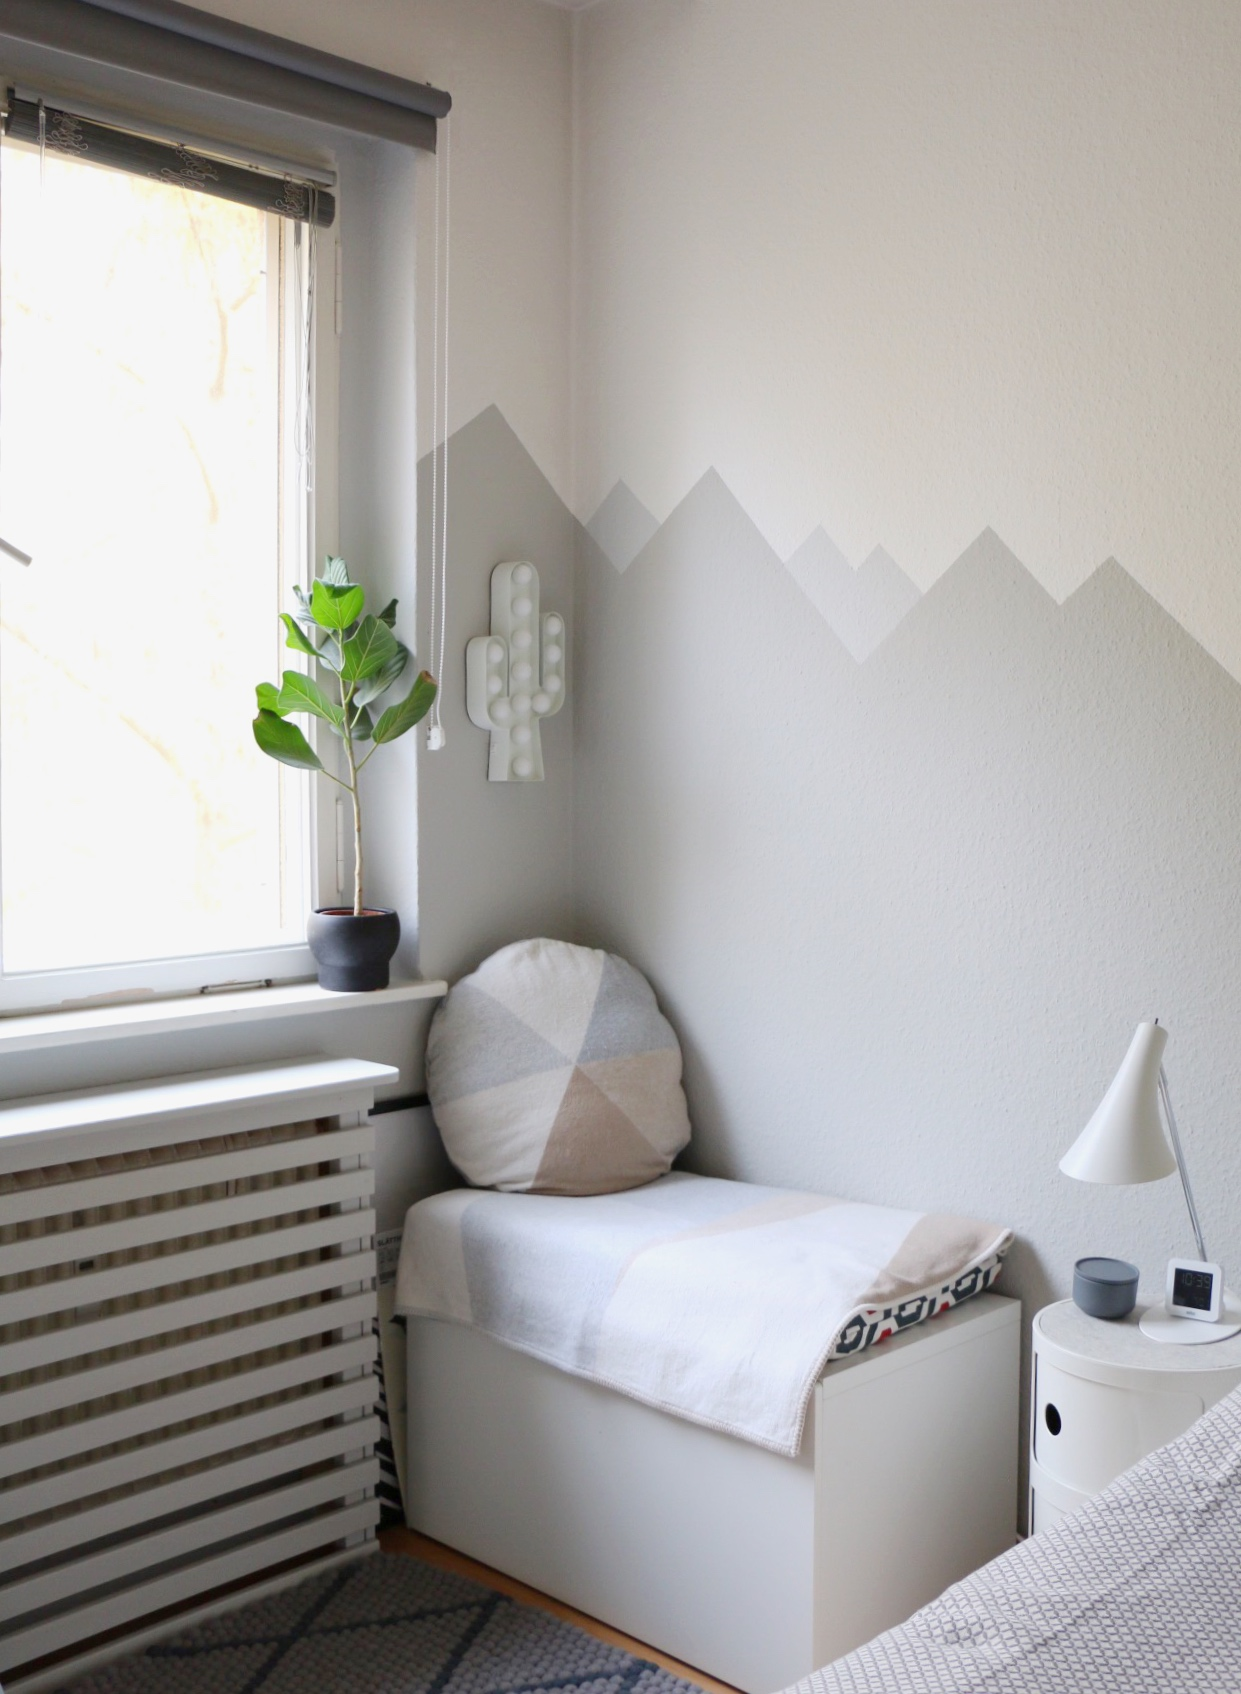 Mountain nursery wallpaint wandgestaltung im babyzimmer eat blog love - Ideen wandgestaltung kinderzimmer ...